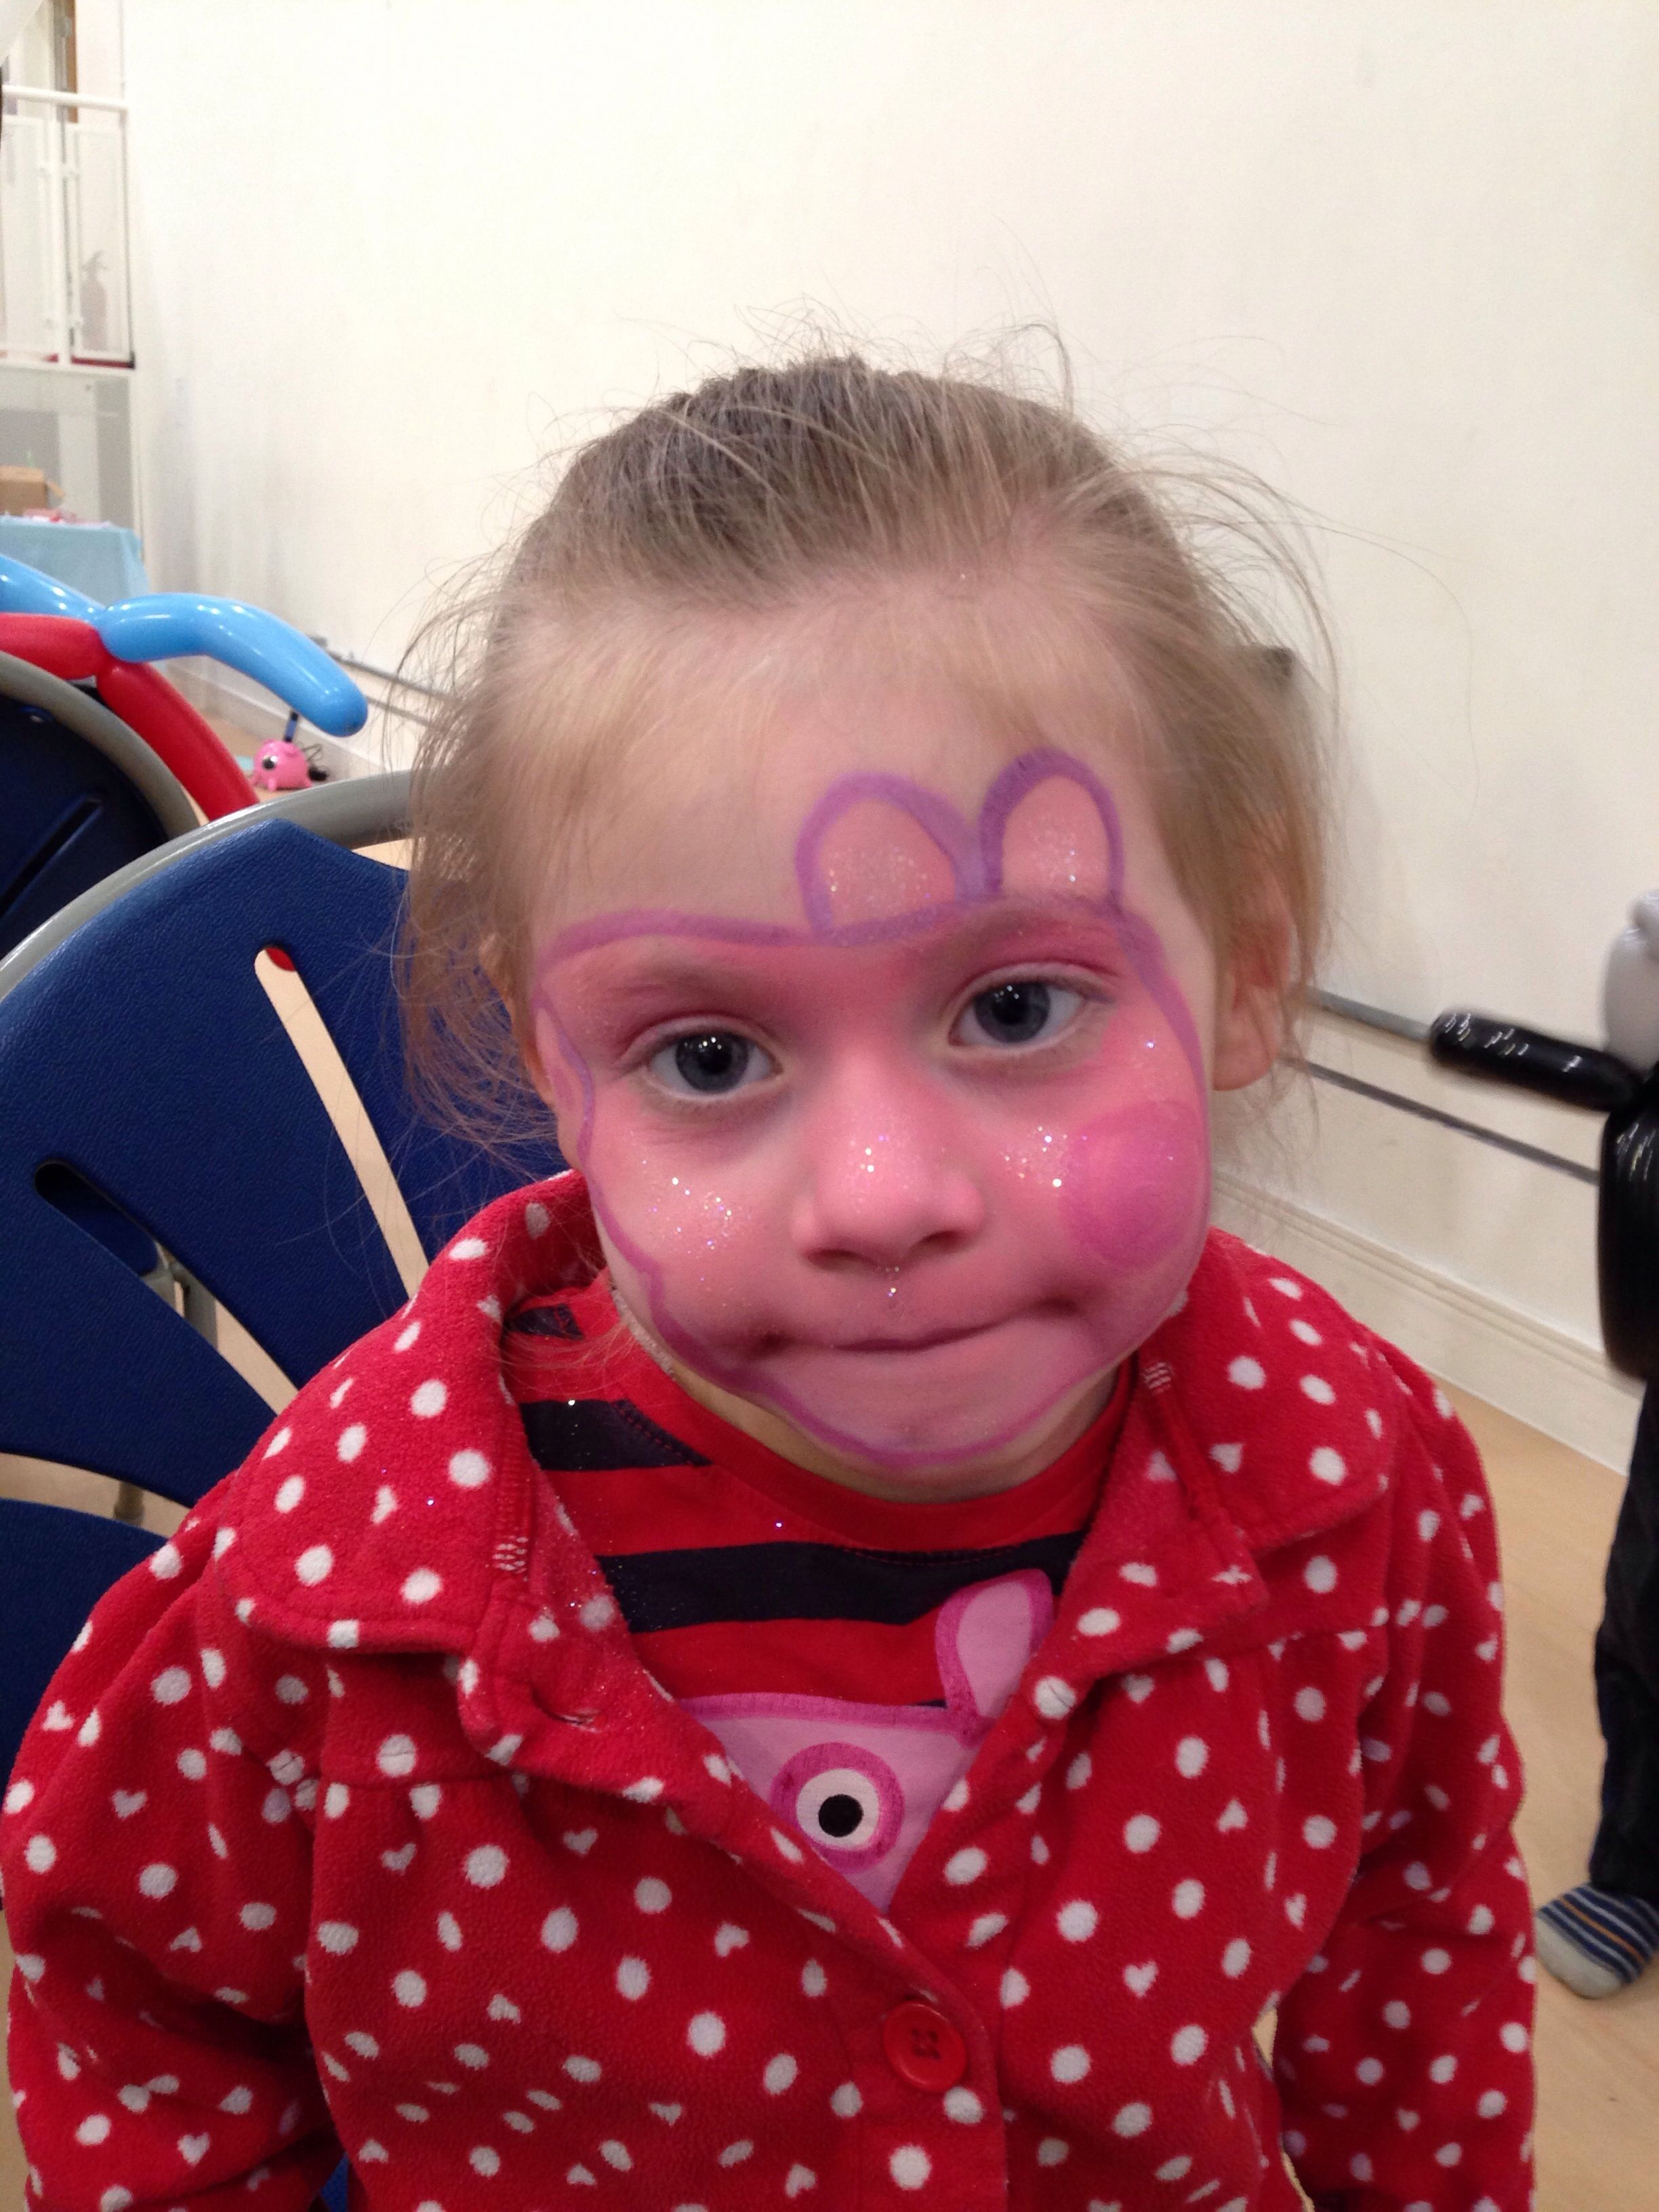 Peppa Pig - Face Painting www.mymasquerade.co.uk | Halloween ...